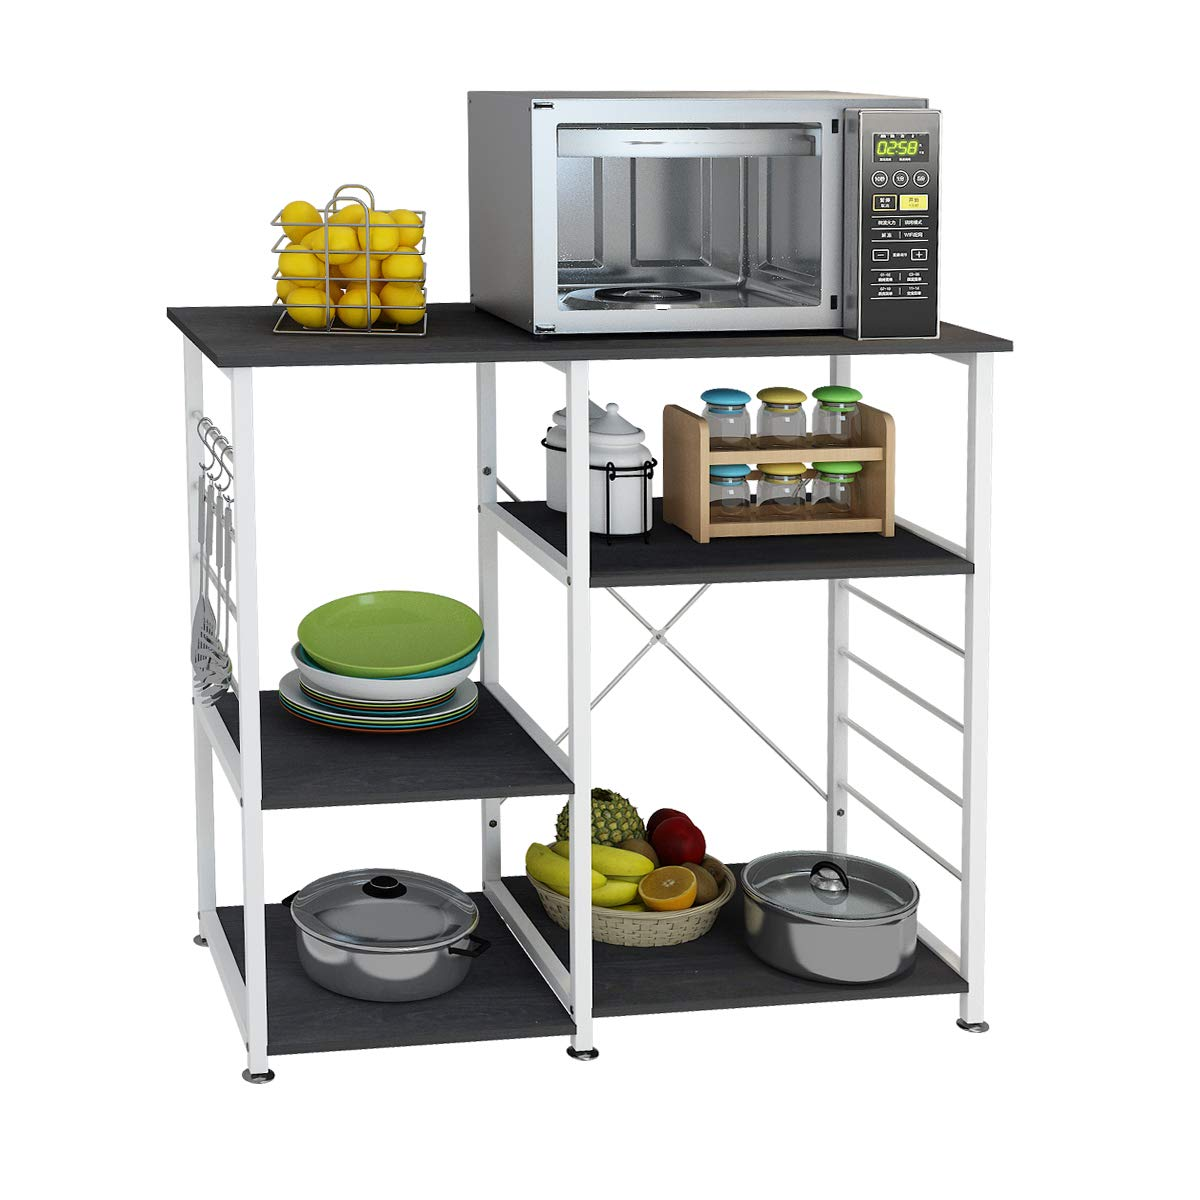 DlandHome Microwave Cart Stand 35.4 inches, Kitchen Baker's Rack Utility Storage Shelf Microwave Stand 3-Tierx3-Tier for Spice Rack Organizer Workstation Shelf, 171-B Black, 1 Pack by DlandHome